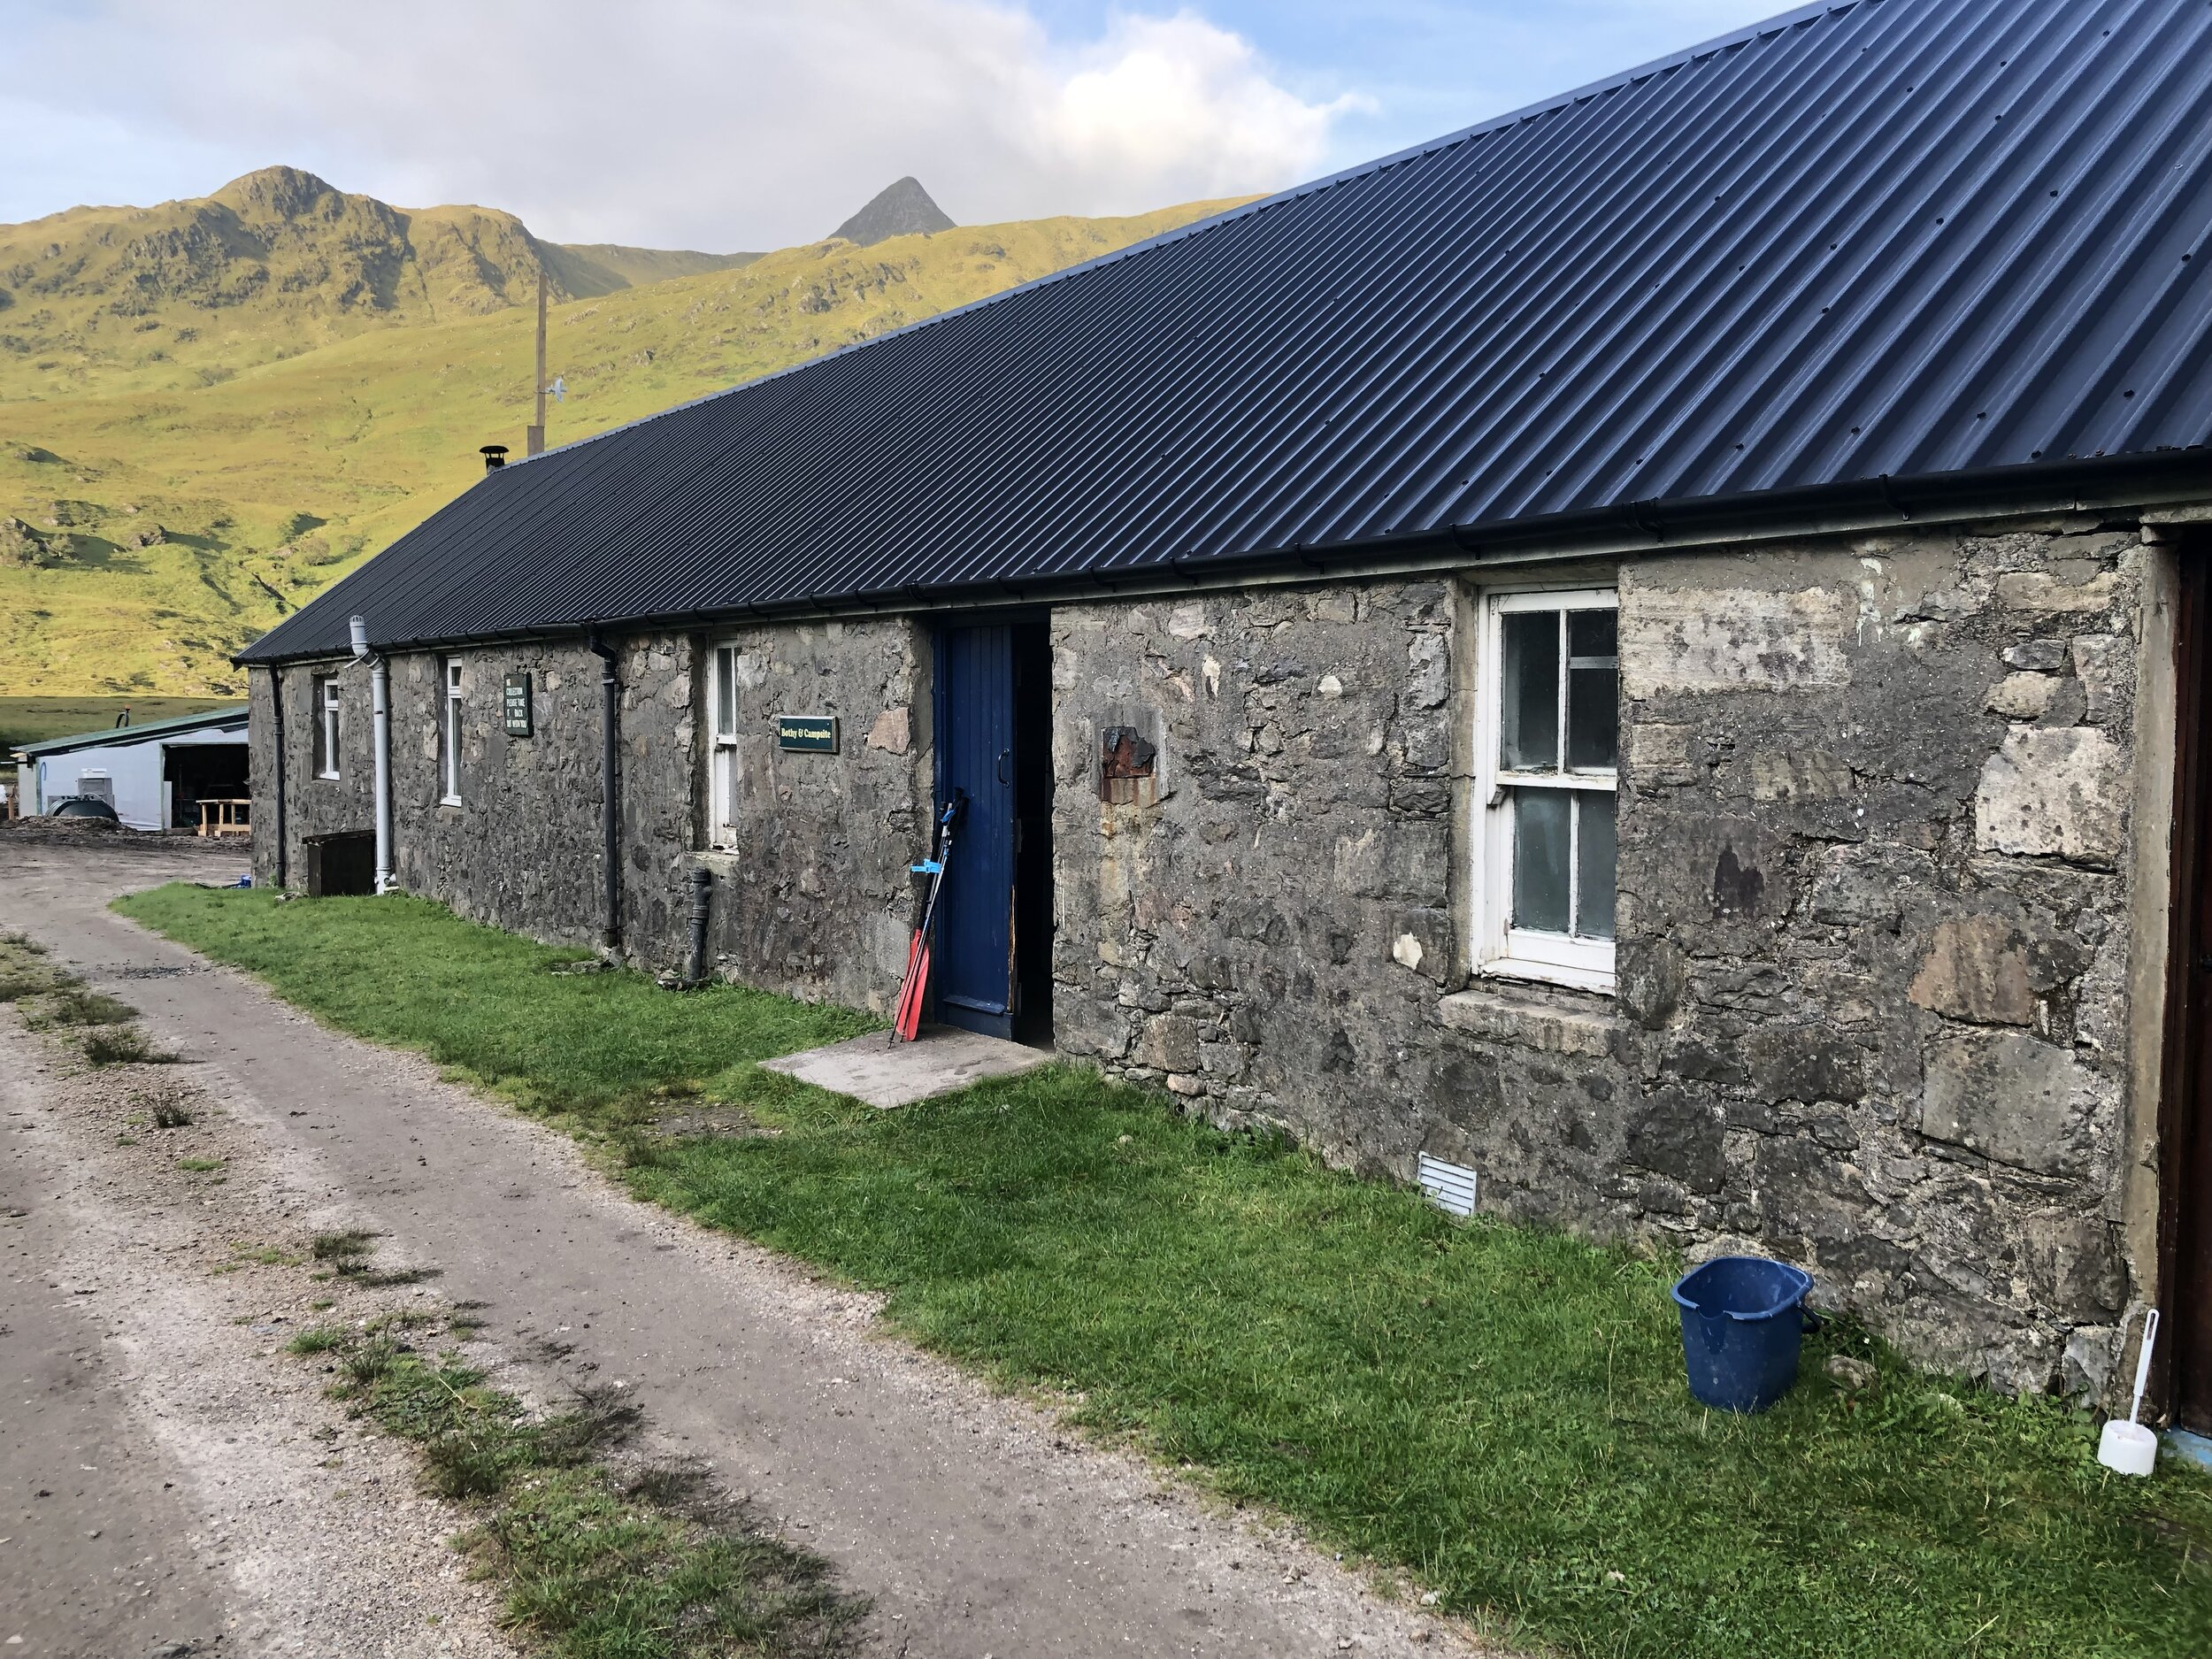 Our bothy for the night. It had a toilet which is very fancy. Photo taken the next morning obviously…..